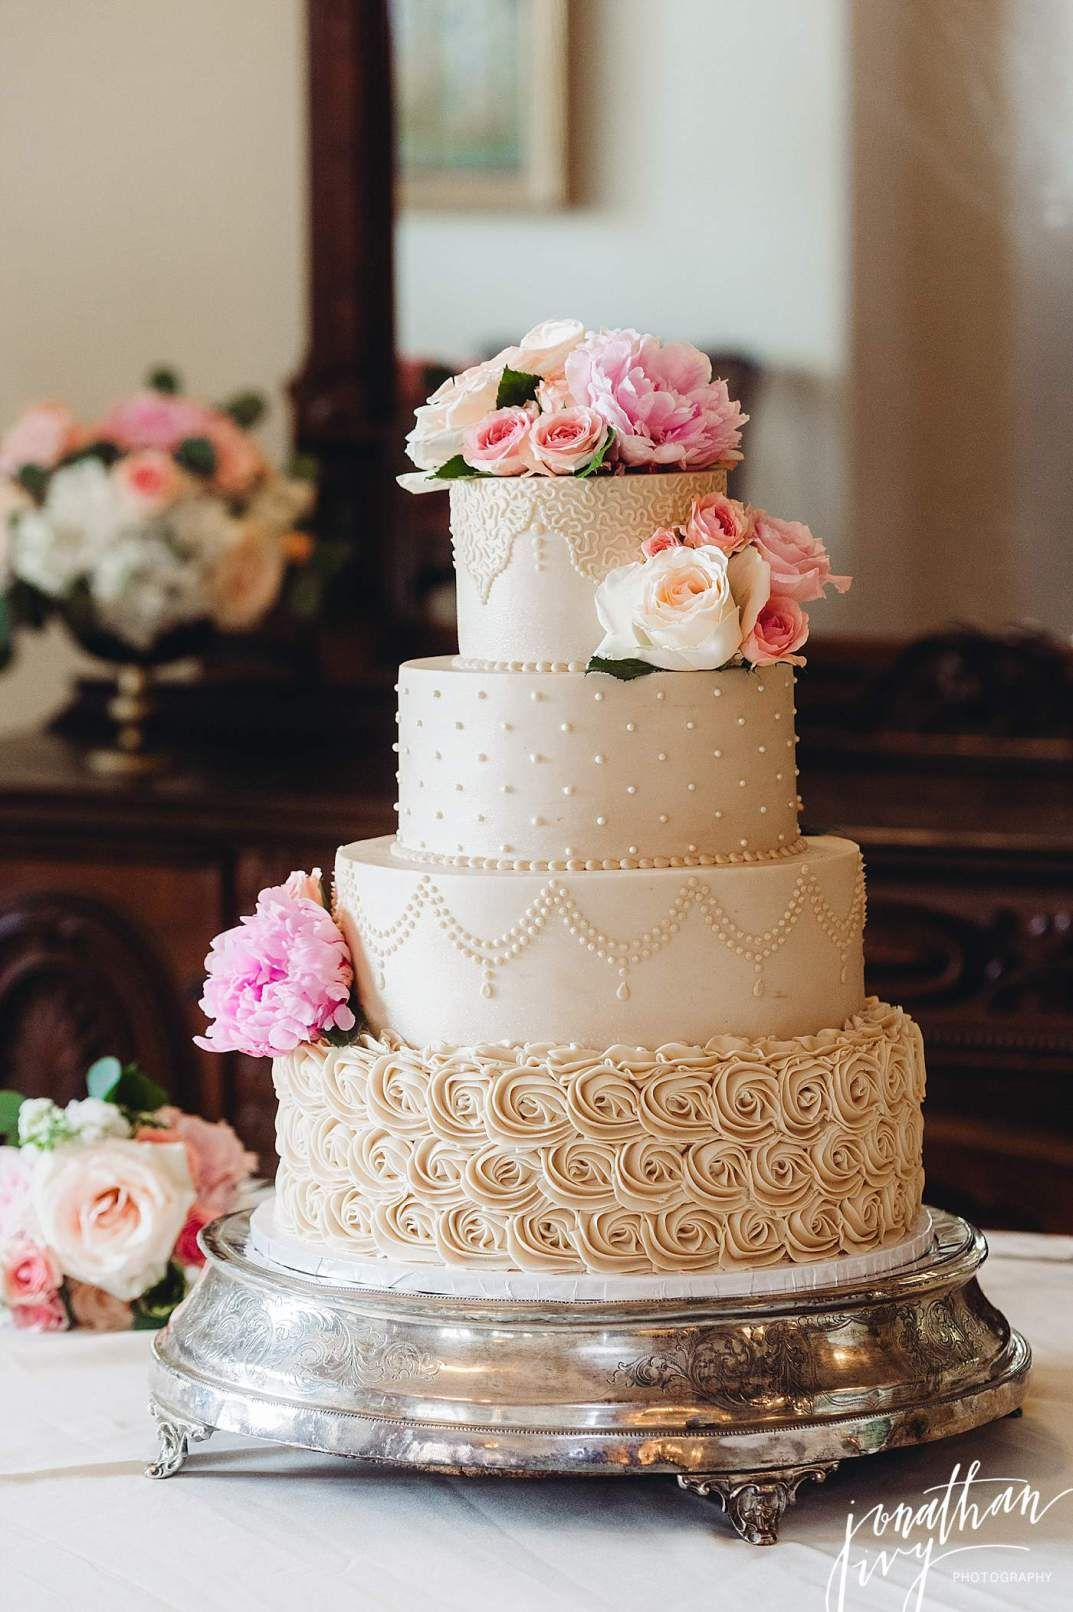 Beautiful beige 4 tier buttercream wedding cake  weddingcake   Best     Beautiful beige 4 tier buttercream wedding cake  weddingcake